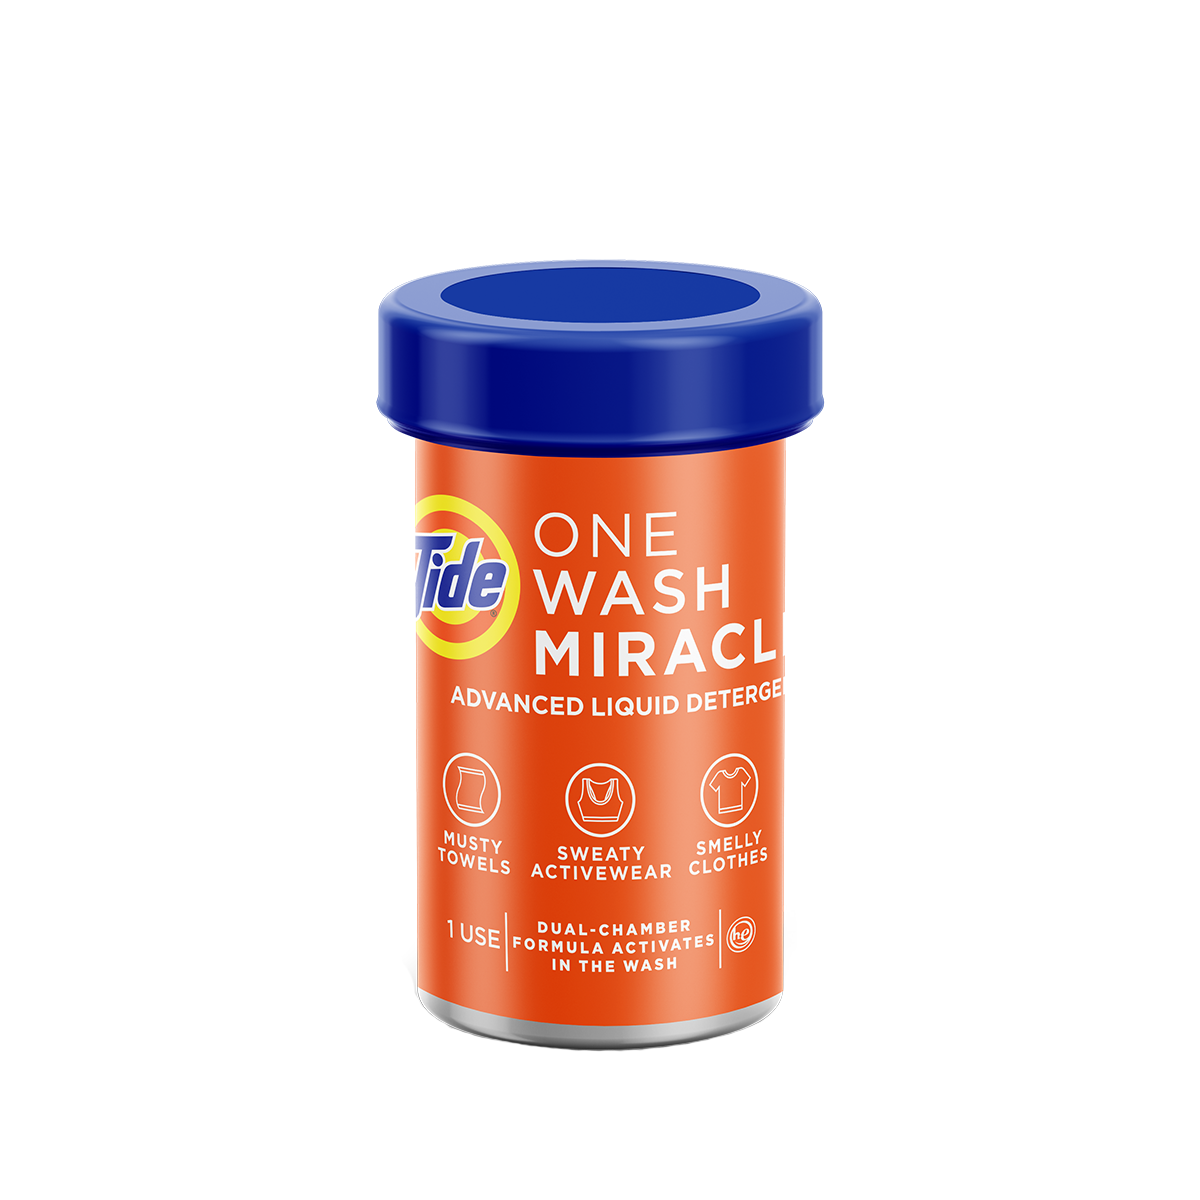 Tide One Wash Miracle Advanced Laundry Detergent